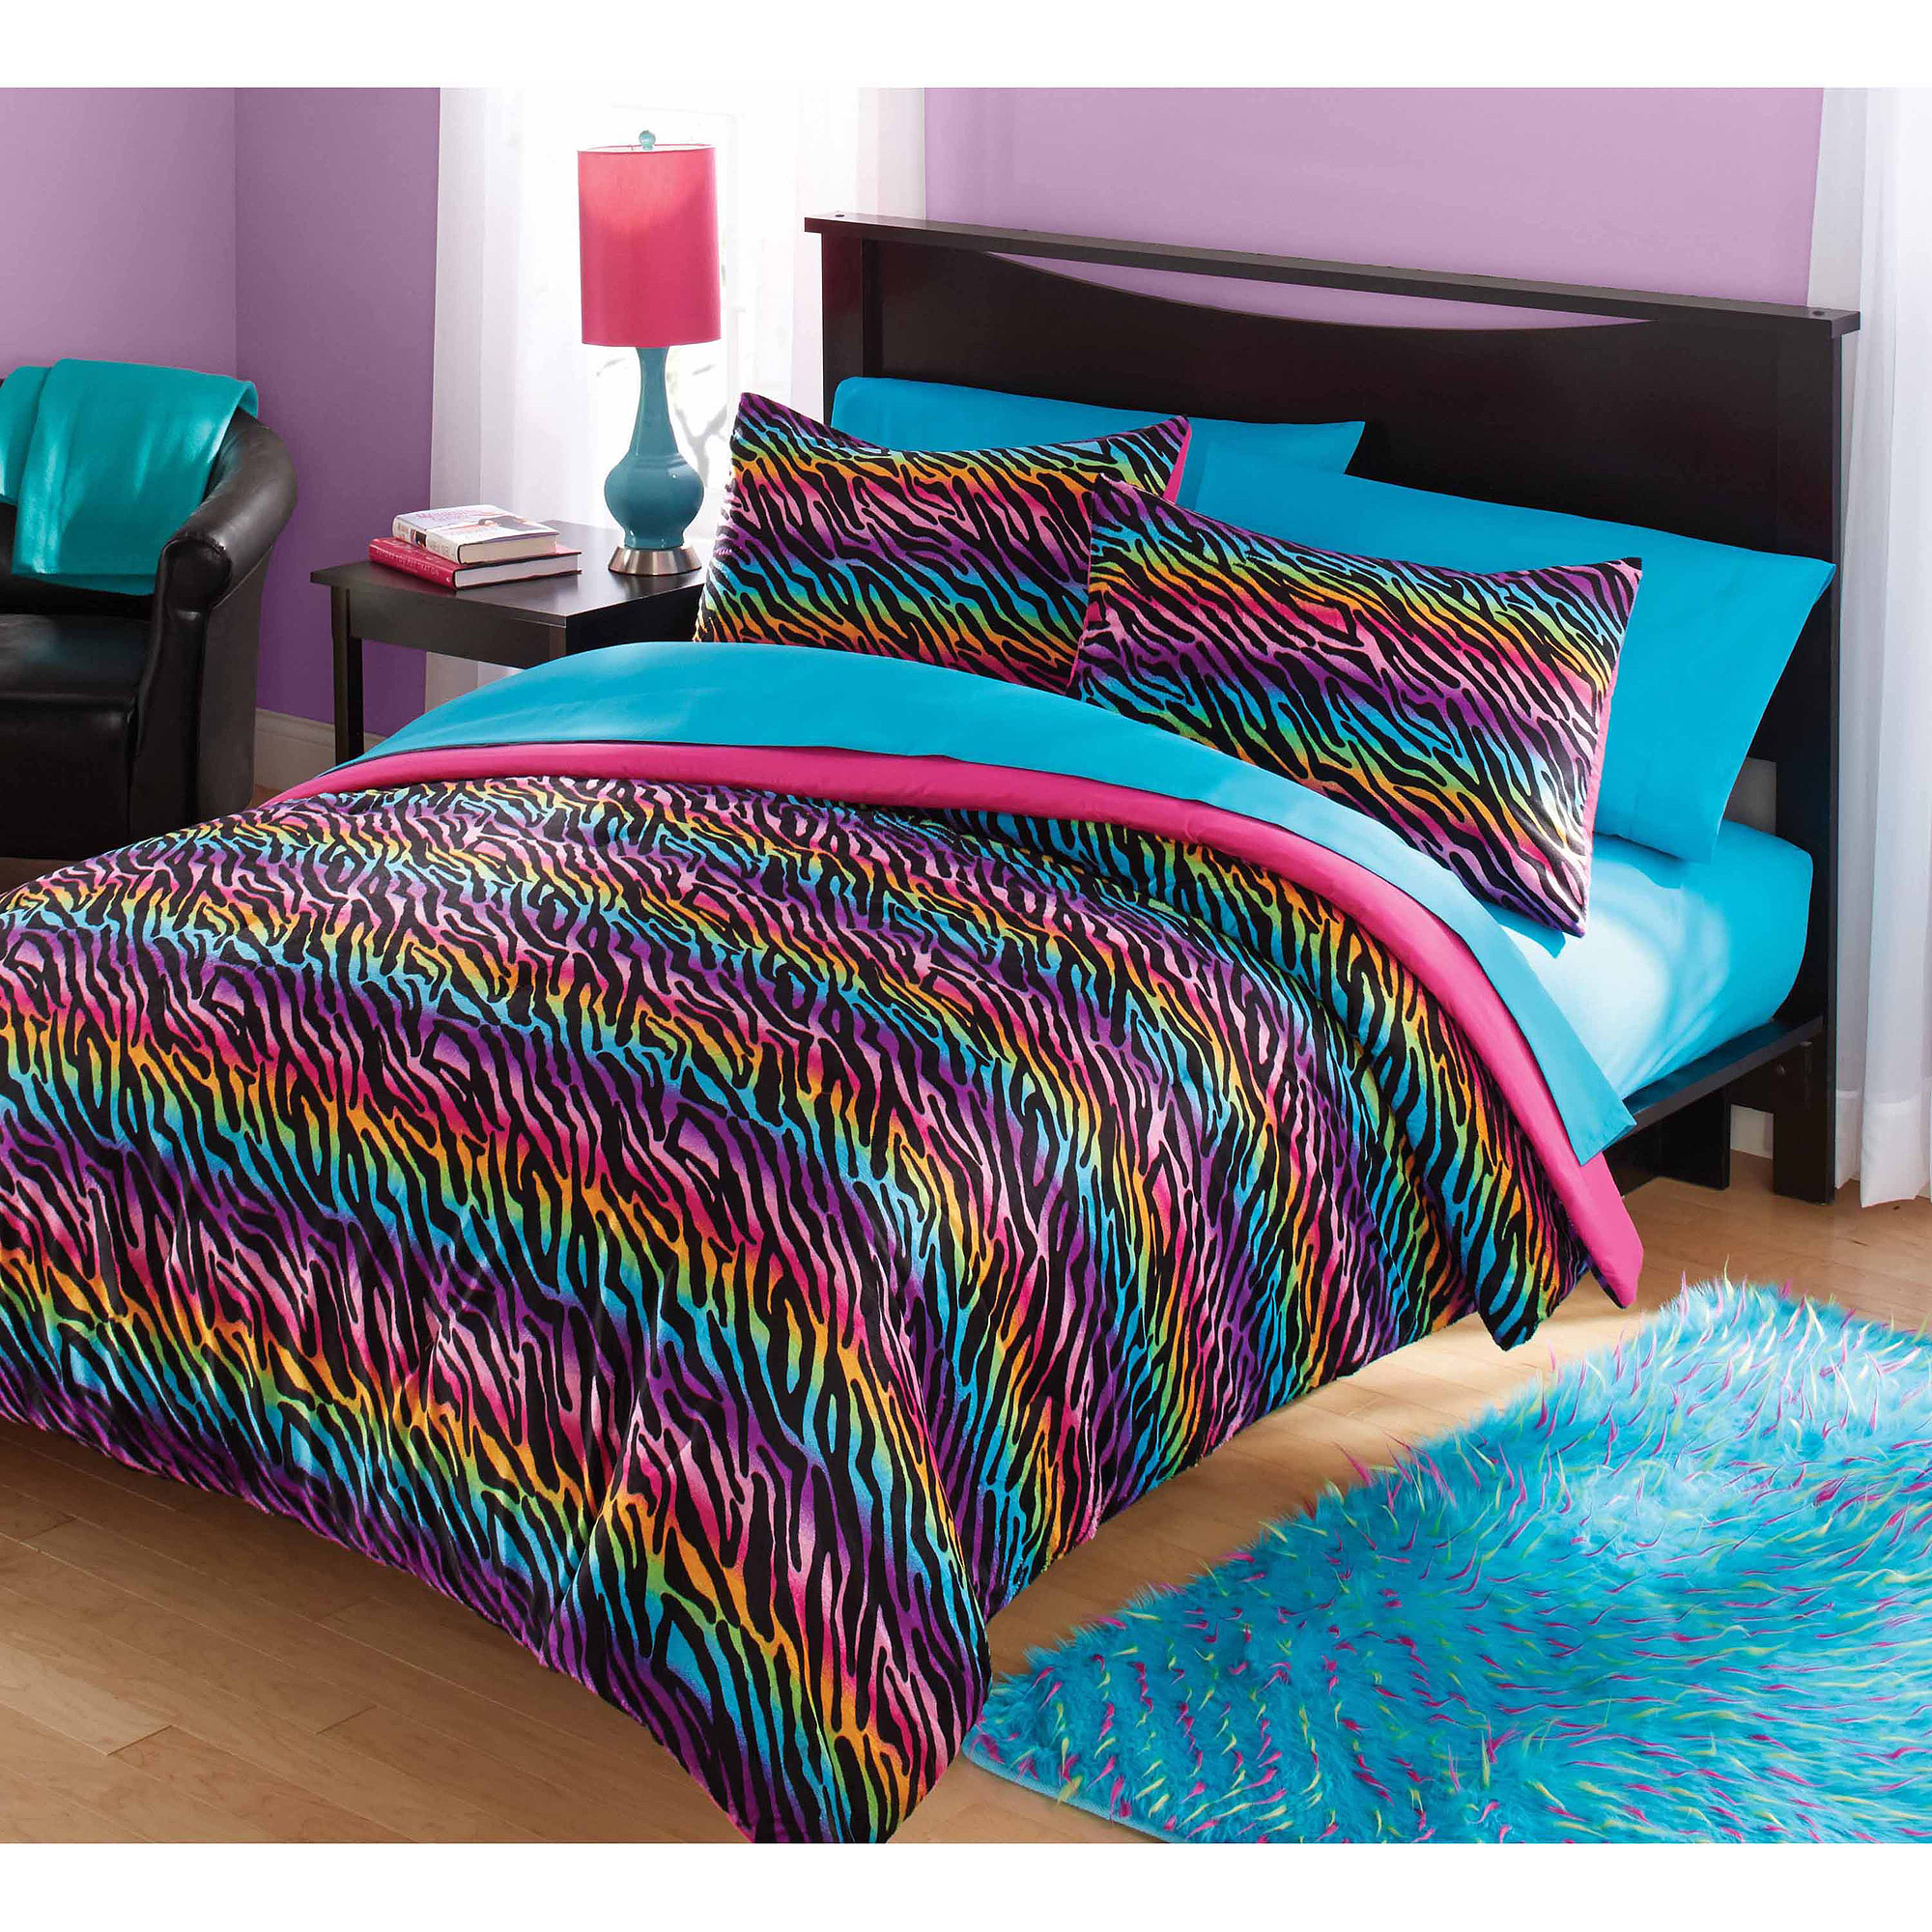 Bedding sets for teenage girls walmart - Bedding Sets For Teenage Girls Walmart 0